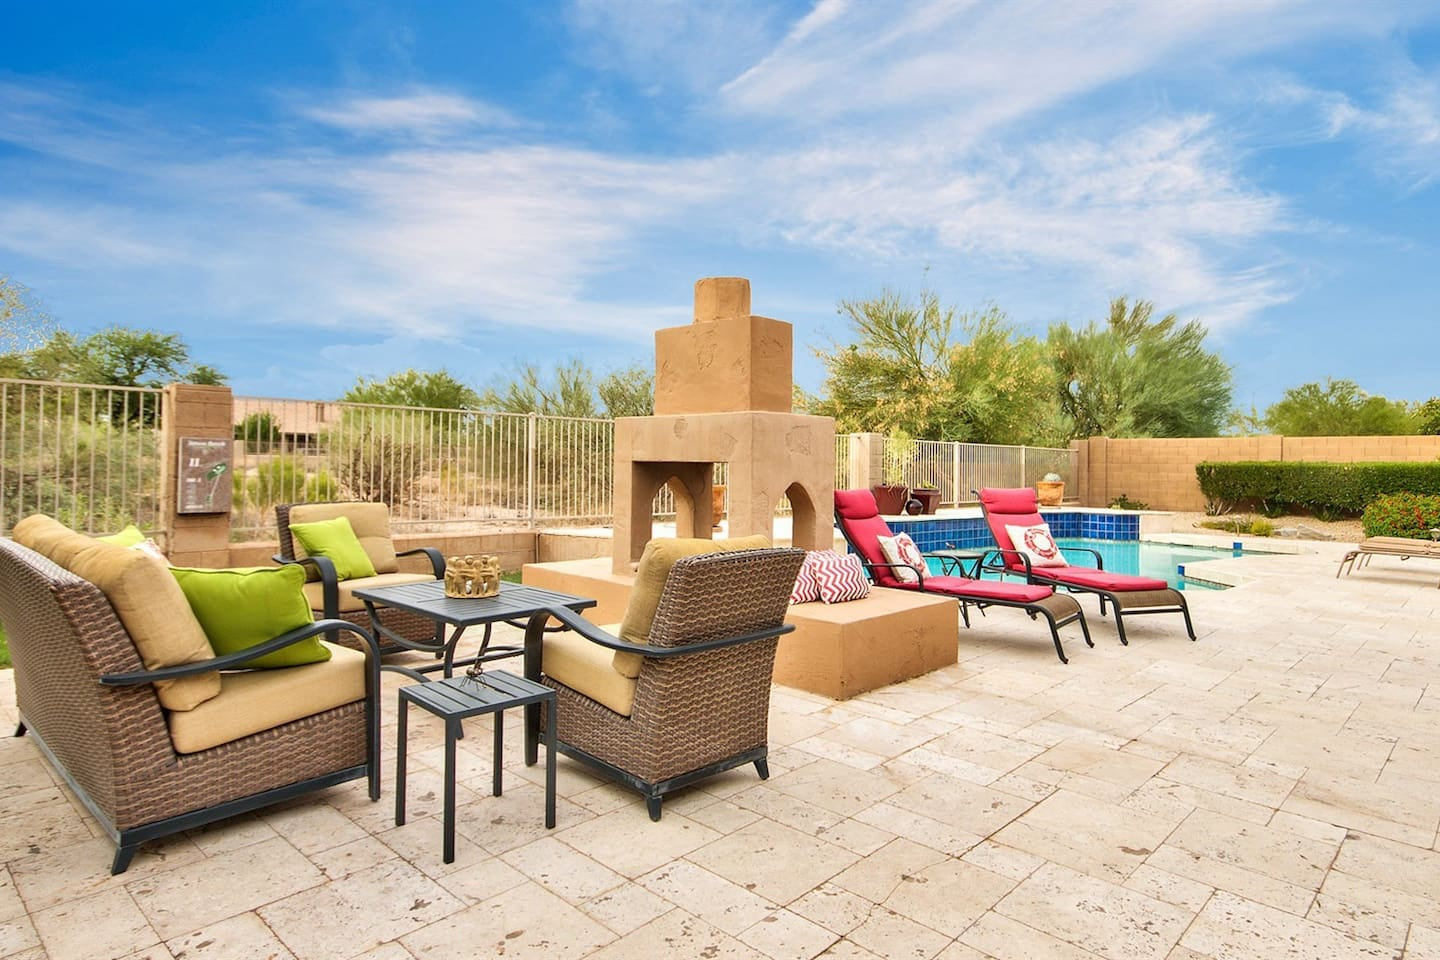 Backyard seating area, Fire pit, Lounging area